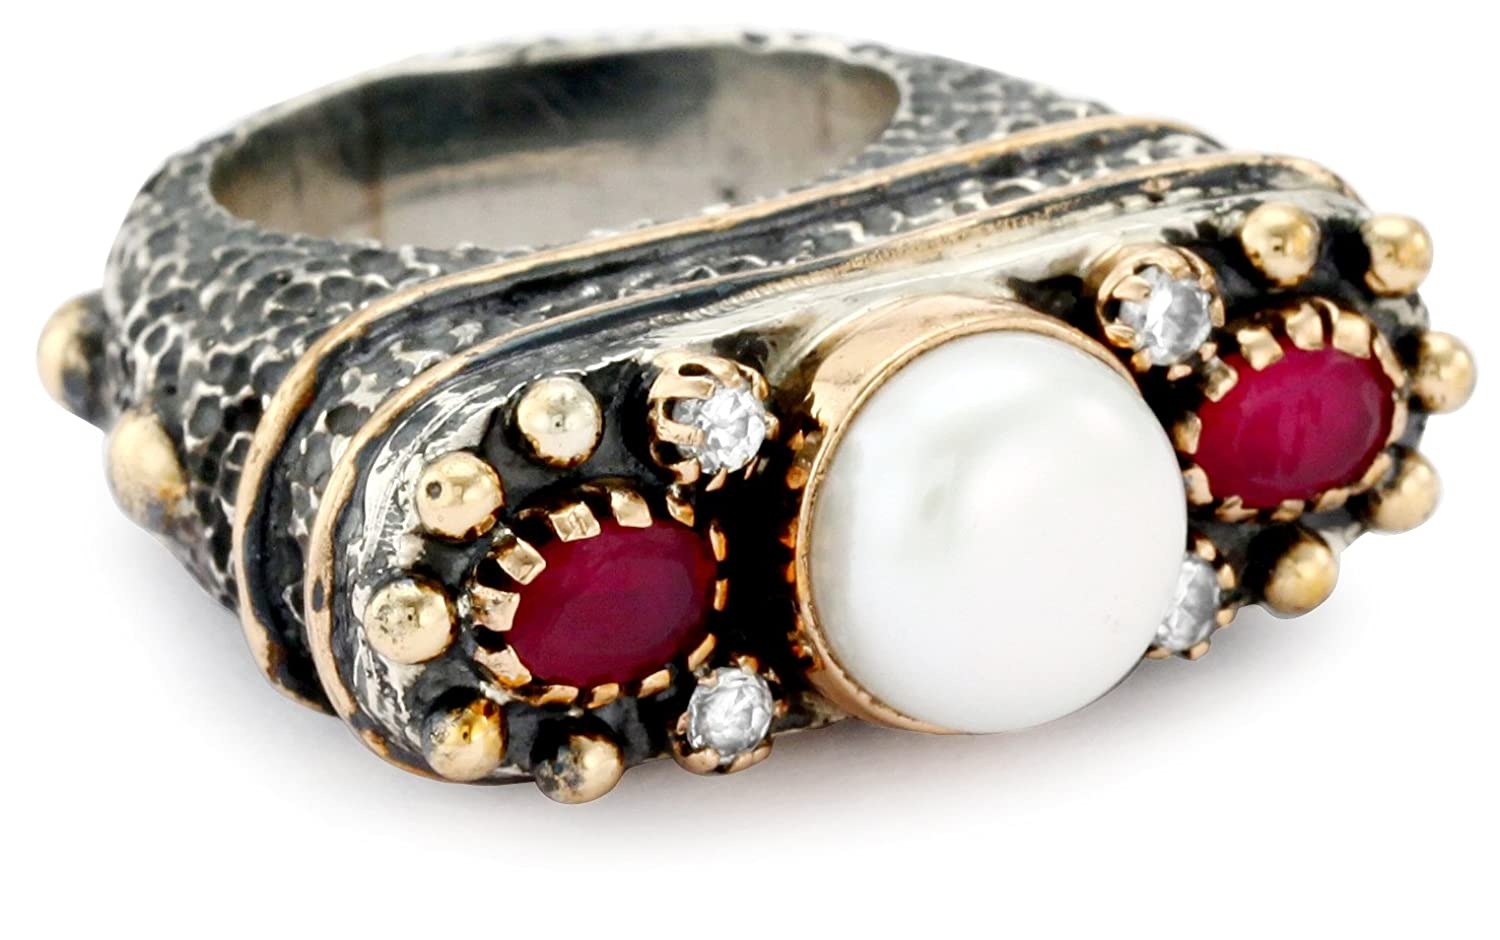 Amazoncom BORA Pearl and Ruby Ring Size 7 Jewelry